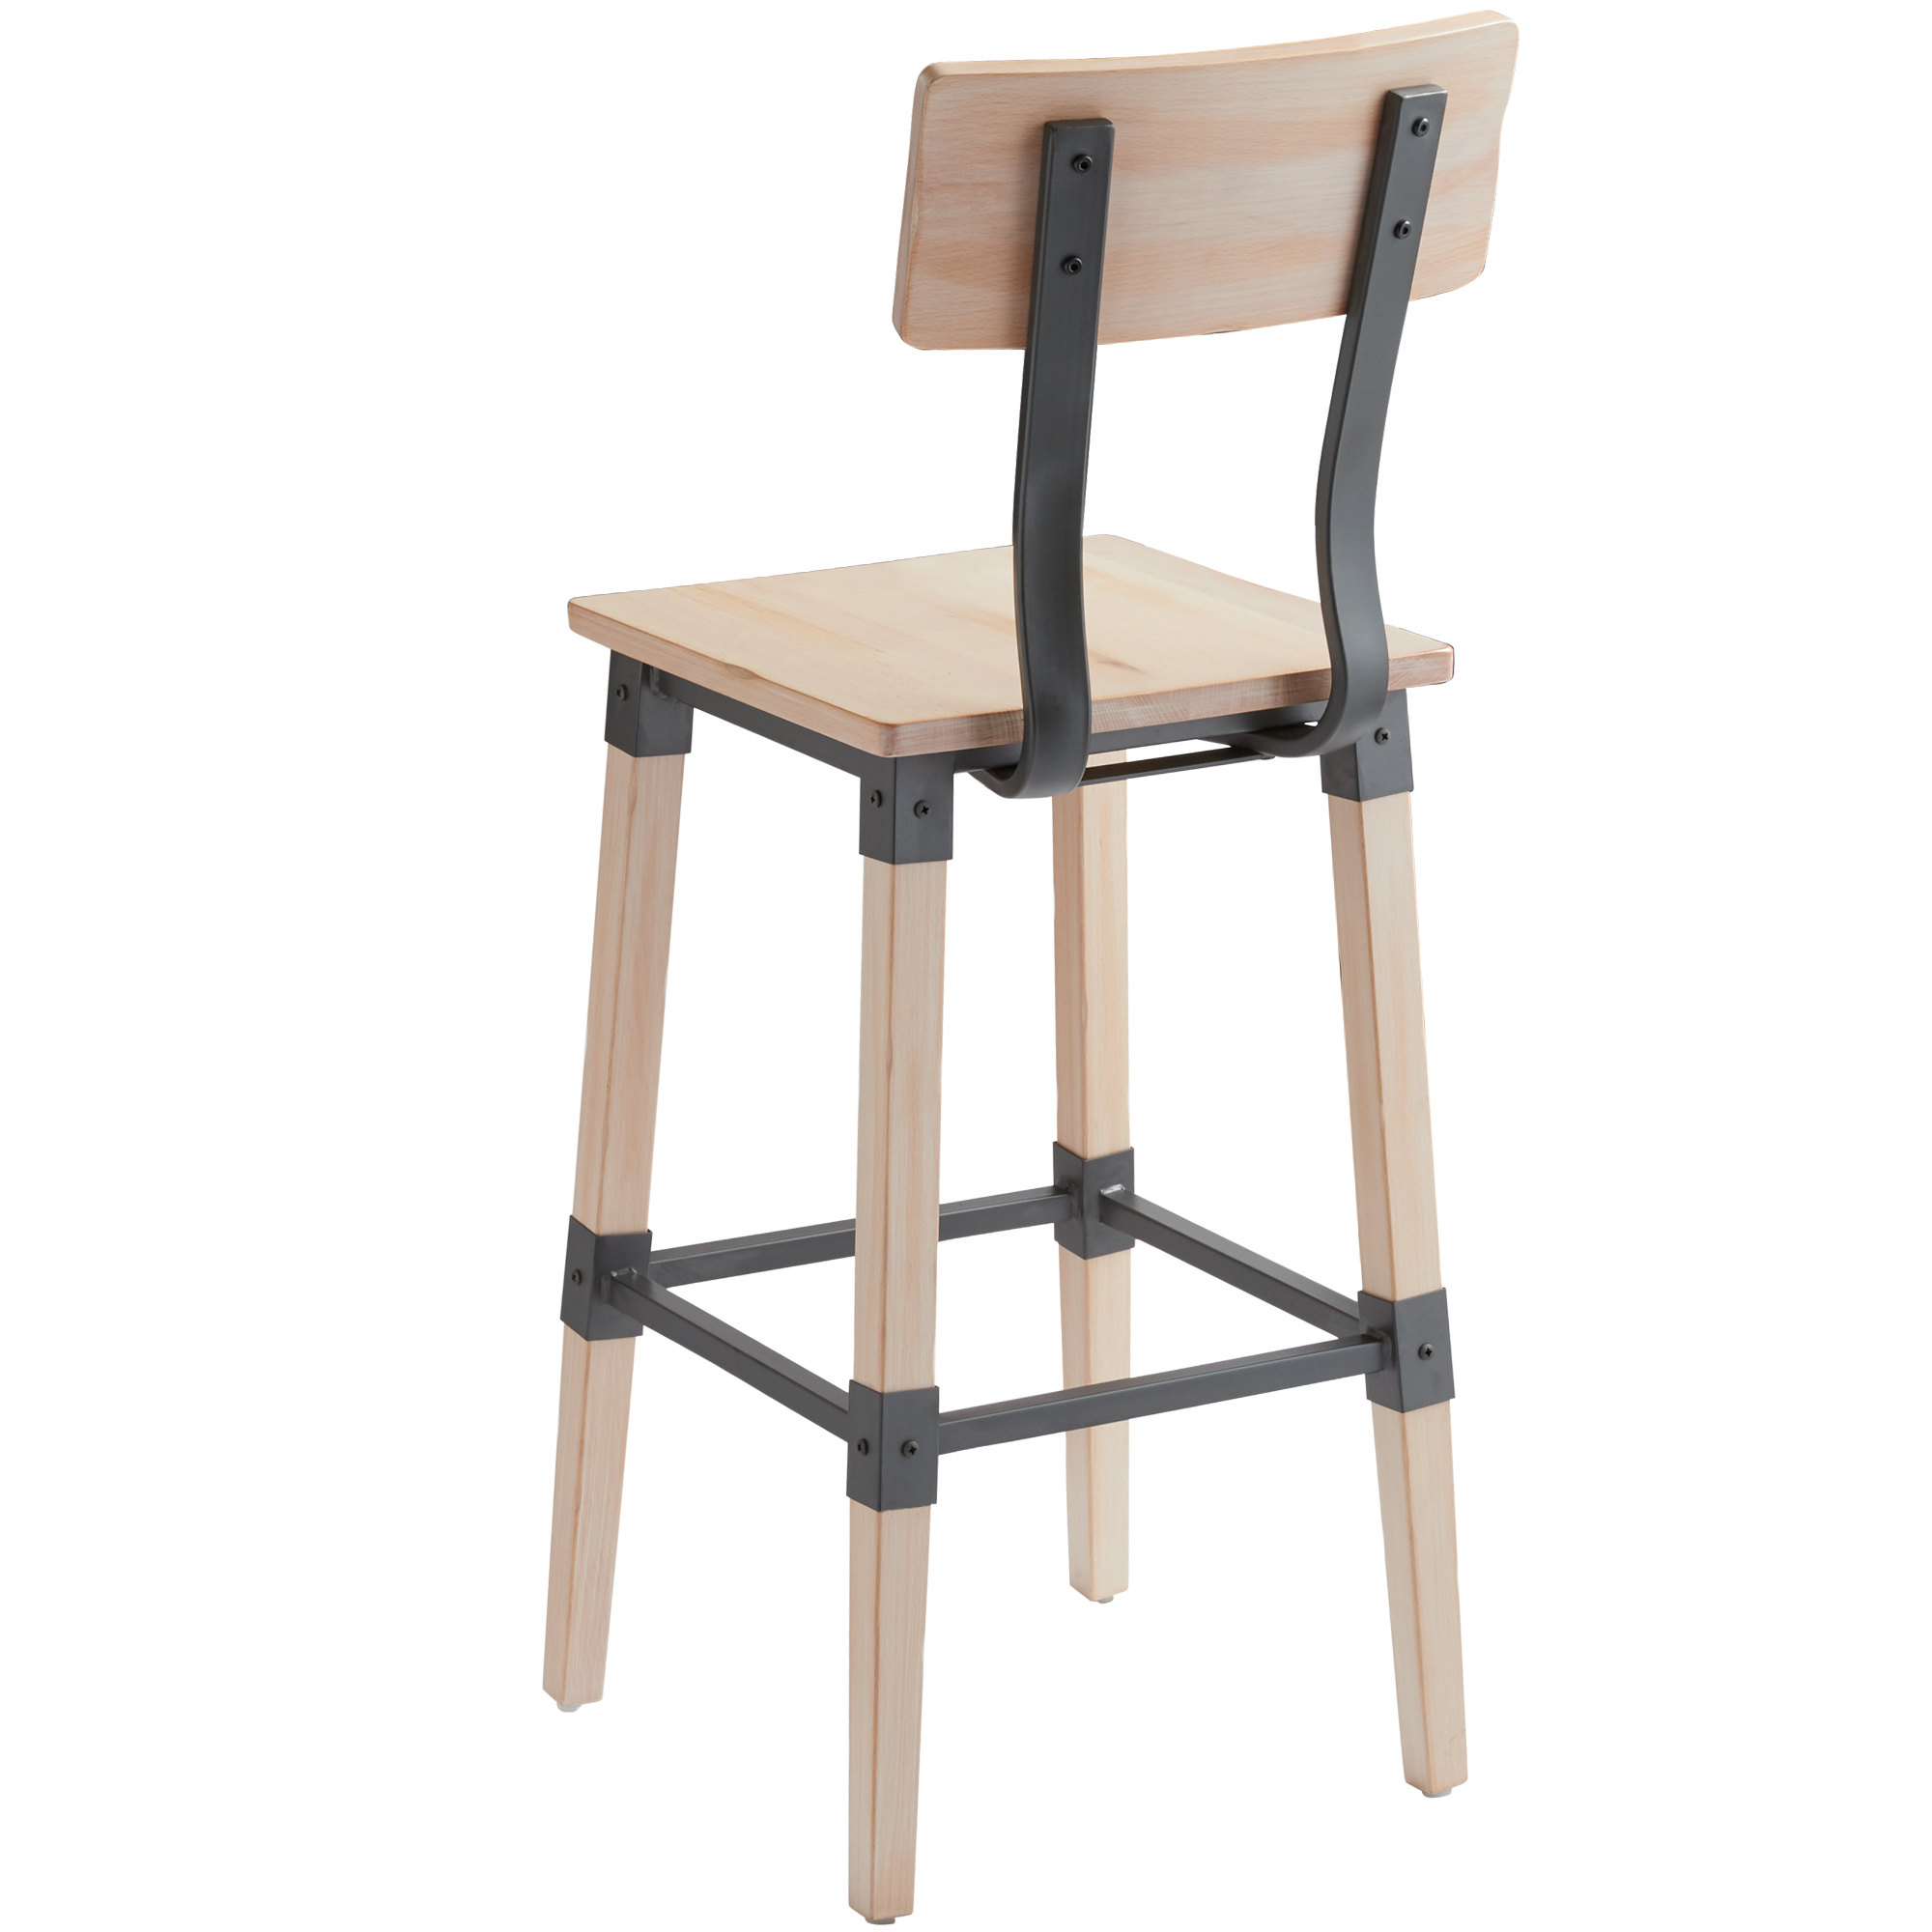 #81 - Rustic Industrial Style Bar Height Chair with White Wash Finish